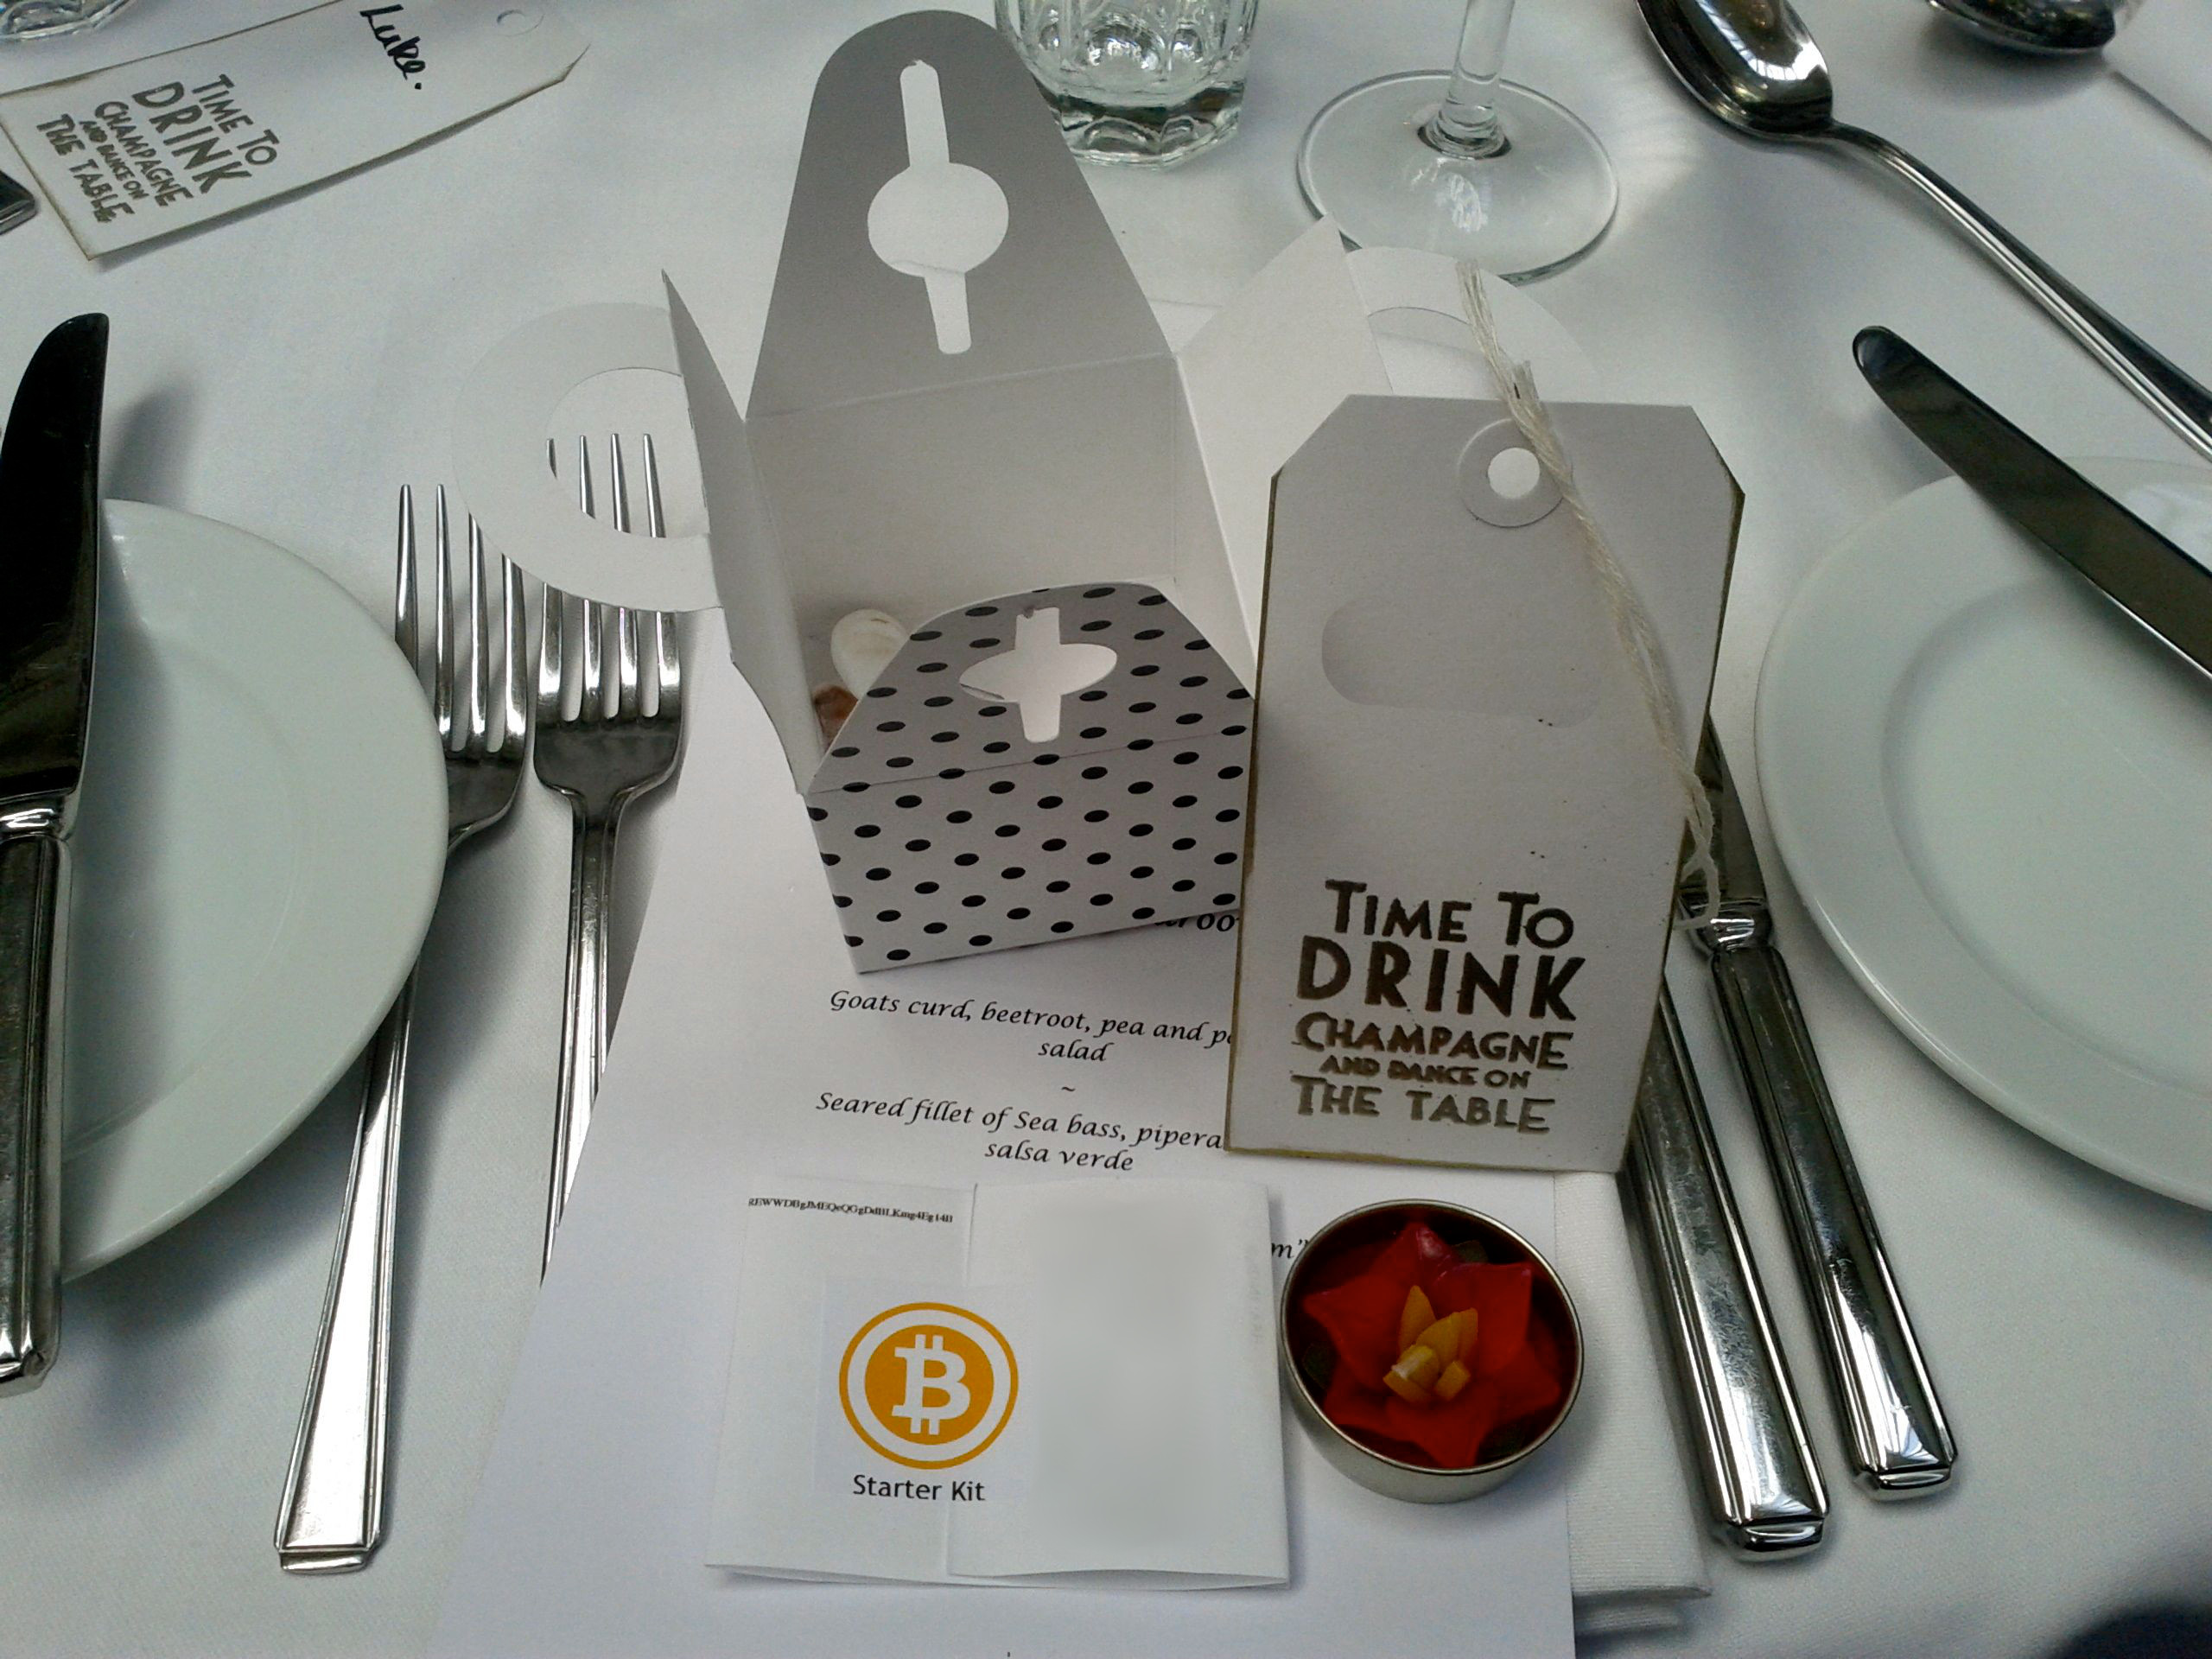 http://www.reddit.com/r/Bitcoin/comments/2cz0y0/went_to_a_wedding_last_weekend_the_bridal_couple/